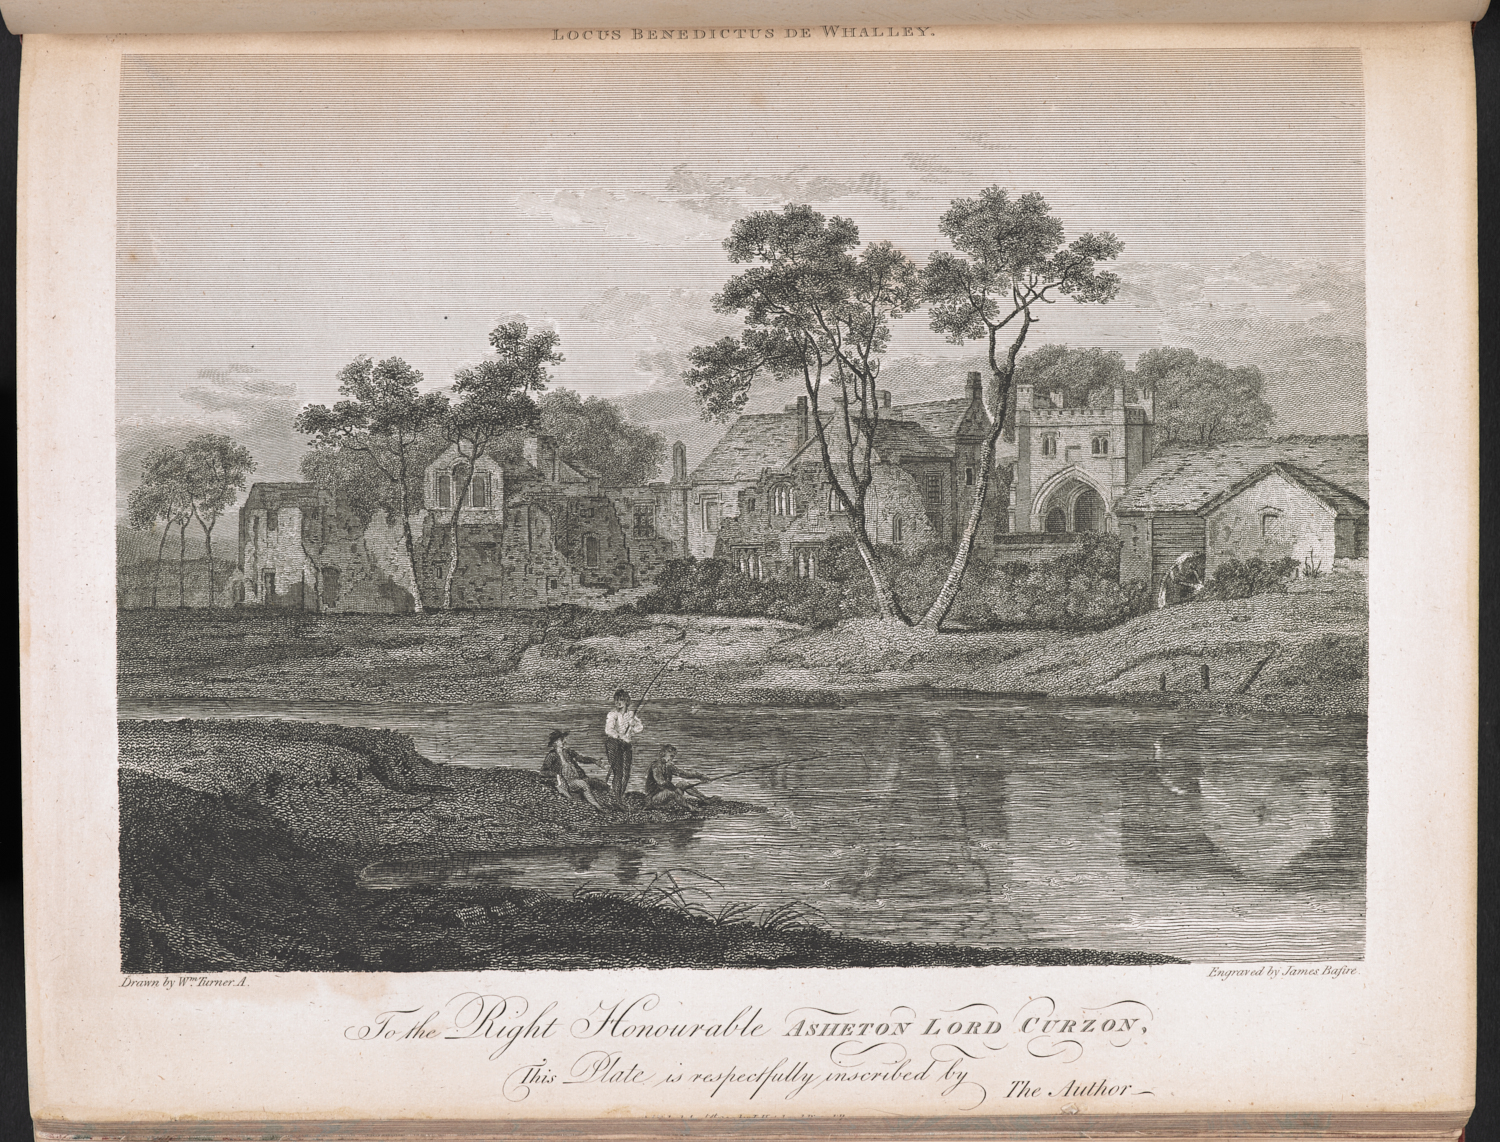 James Basire after JMW Turner Whalley Abbey (Nearer View),   plate VIII   in Thomas Dunham Whitaker History of the Original Parish of Whalley and Honour of Clitheroe in the Counties of Lancaster and York, (Blackburn, 1801), engraving, 241 x 293mm, British Library, London.